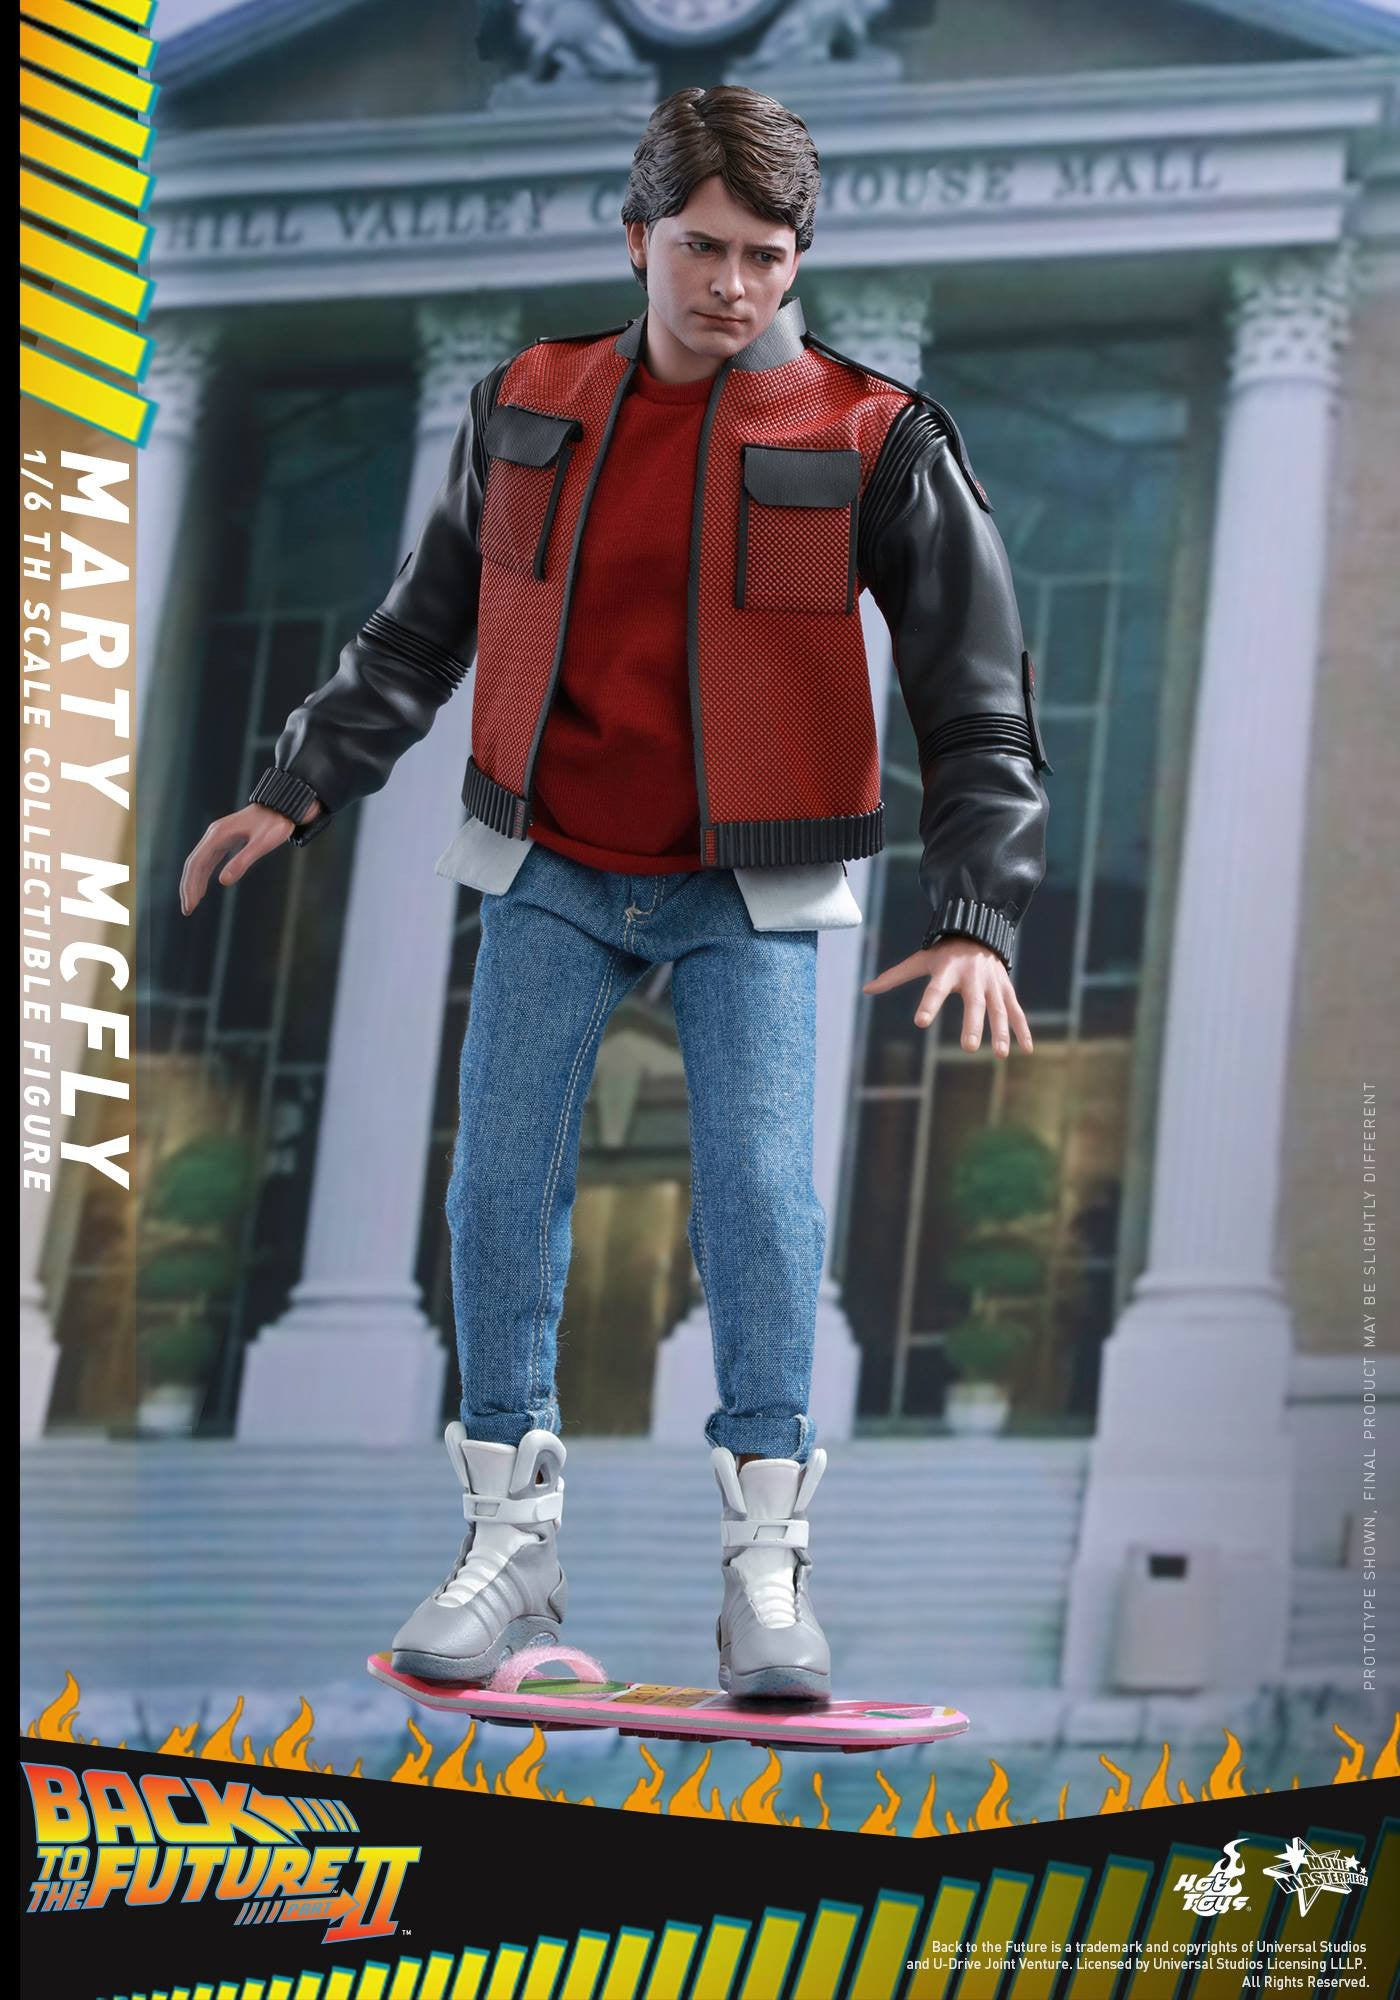 Hot Toys - MMS379 - Back to The Future Part II - Marty McFly (Normal Edition) - Marvelous Toys - 1